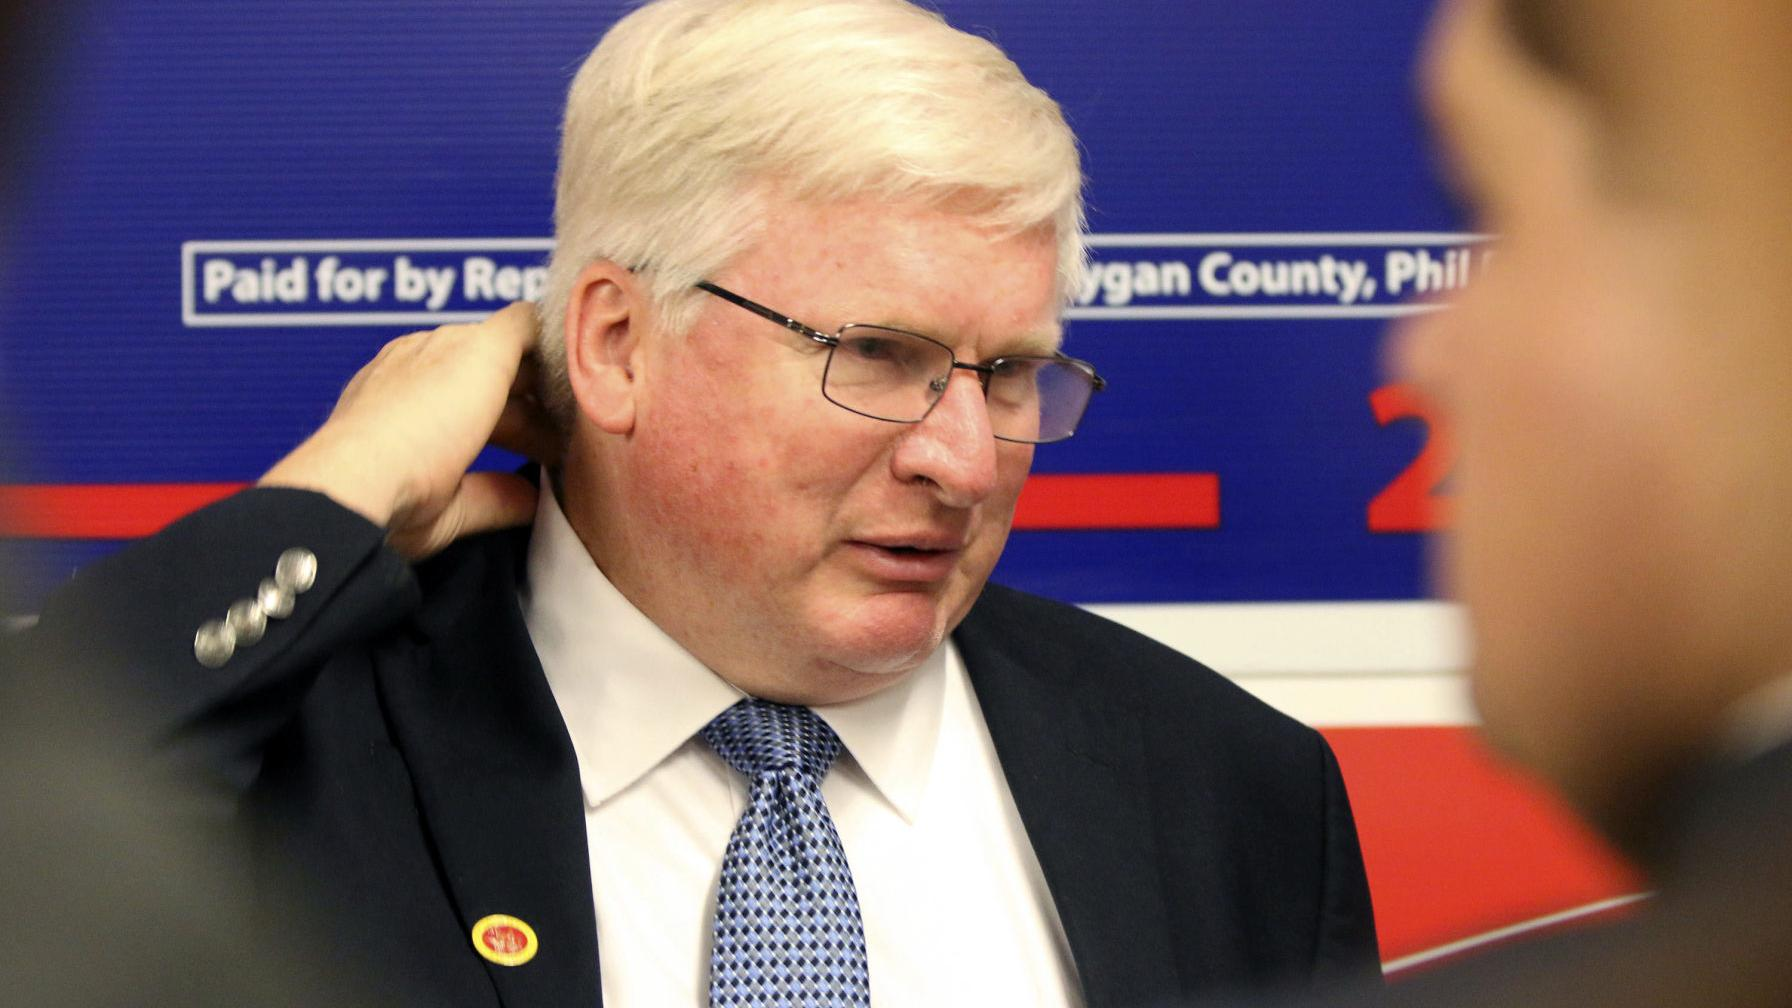 Glenn Grothman would rather punish federal workers than hold Trump to account